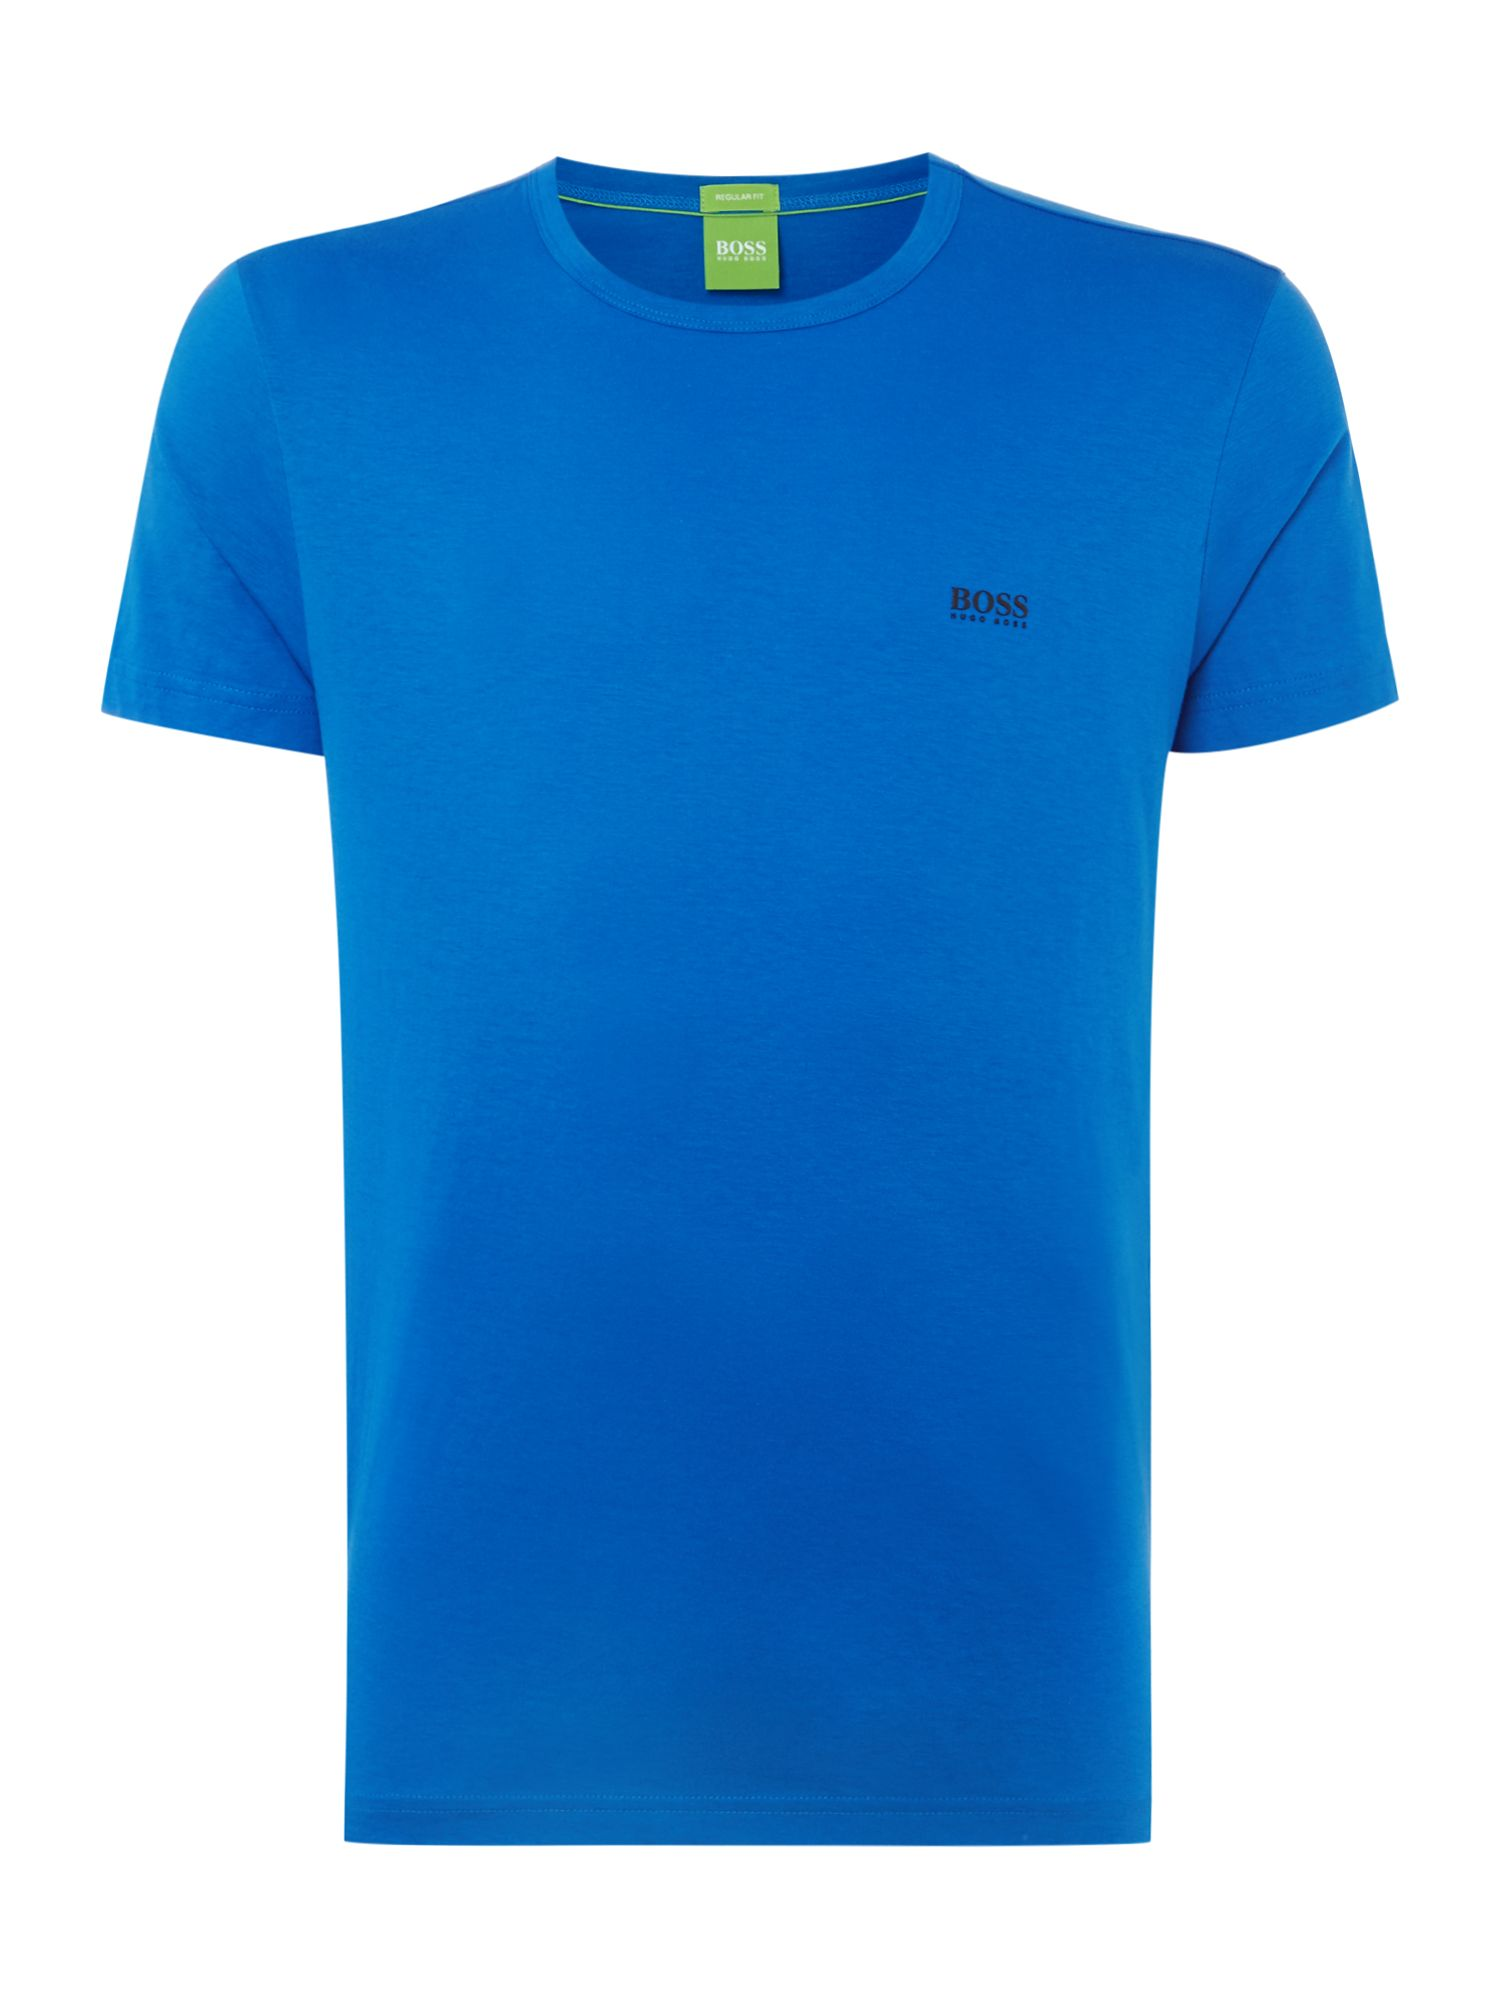 Men's Hugo Boss Crew Neck Regular Fit T-Shirt, Blue